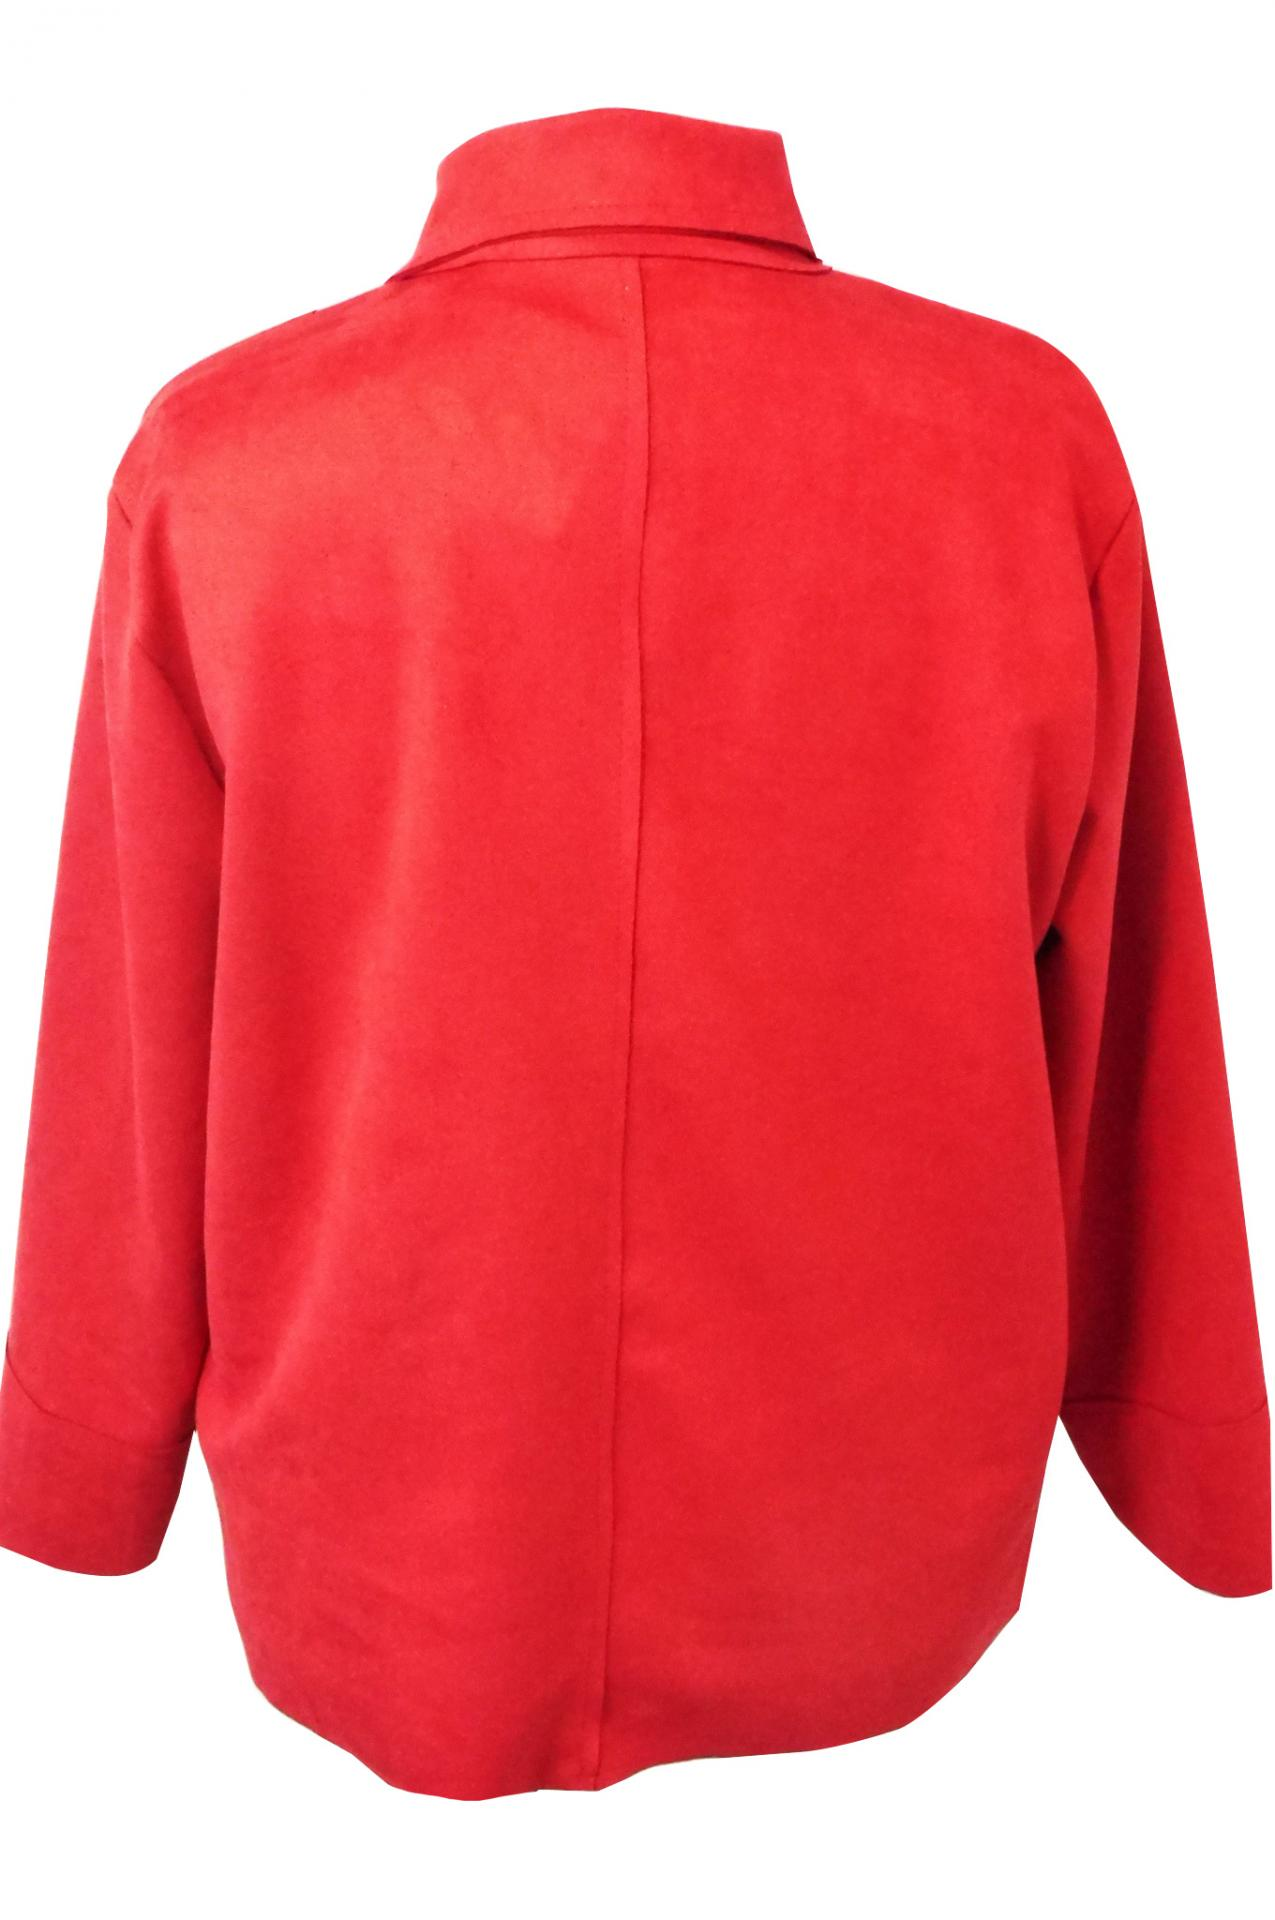 Perfecto grandetaille rouge